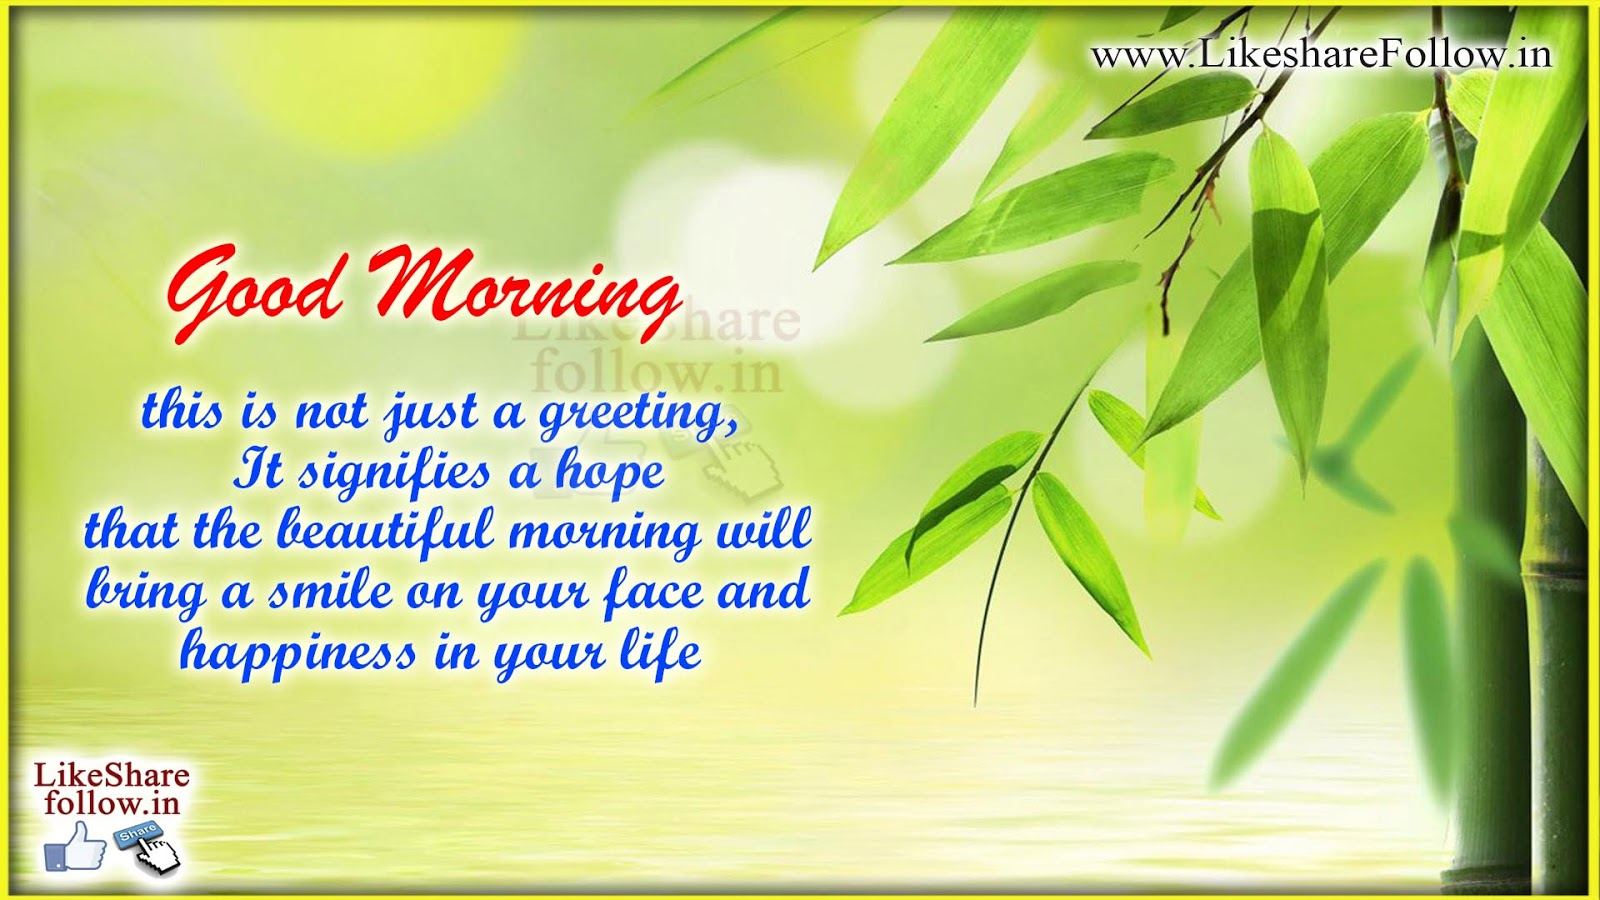 Good Morning Touching Quotes: Best Of The Best 40 Good Morning Messages Wishes For